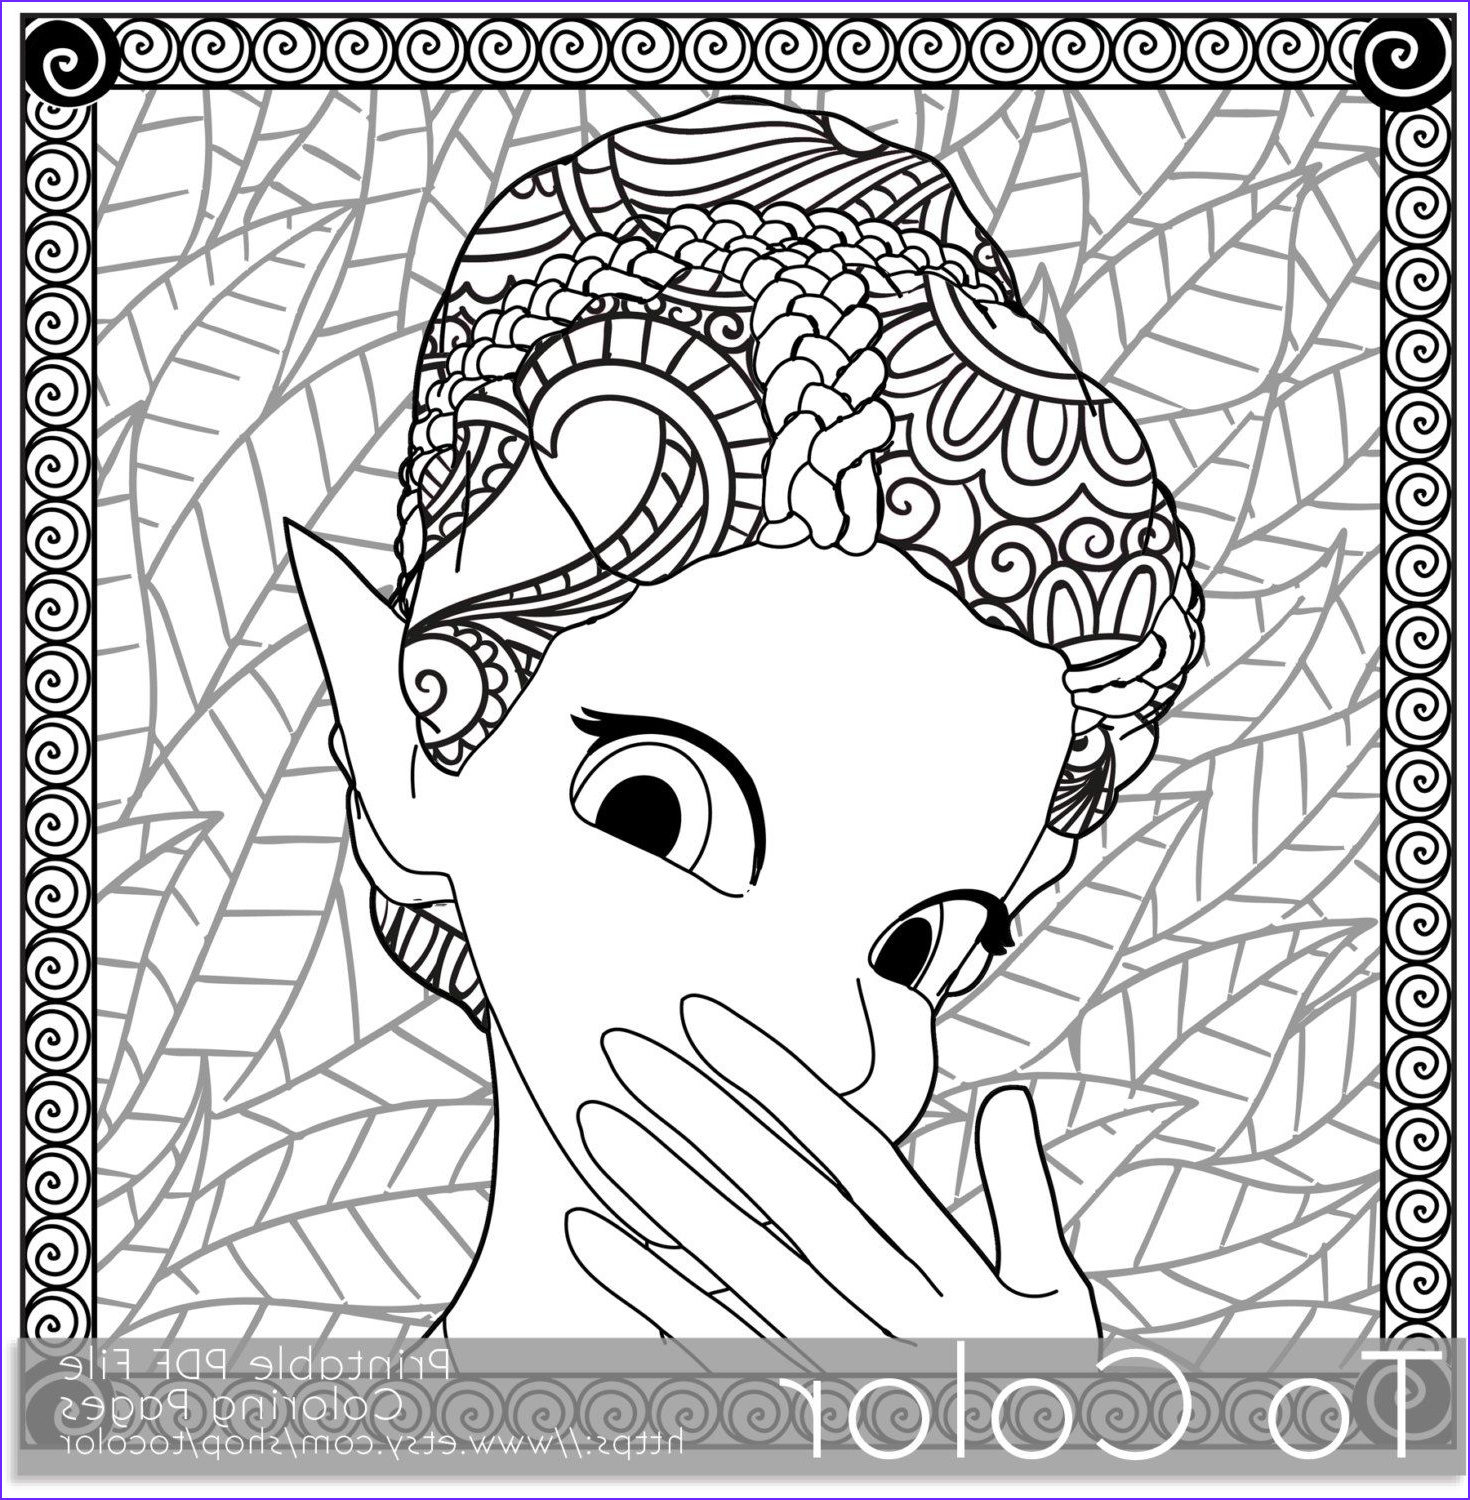 Adult Coloring Books Download Cool Photography Retro Girl Pixie Fairy Printable Coloring Pages for